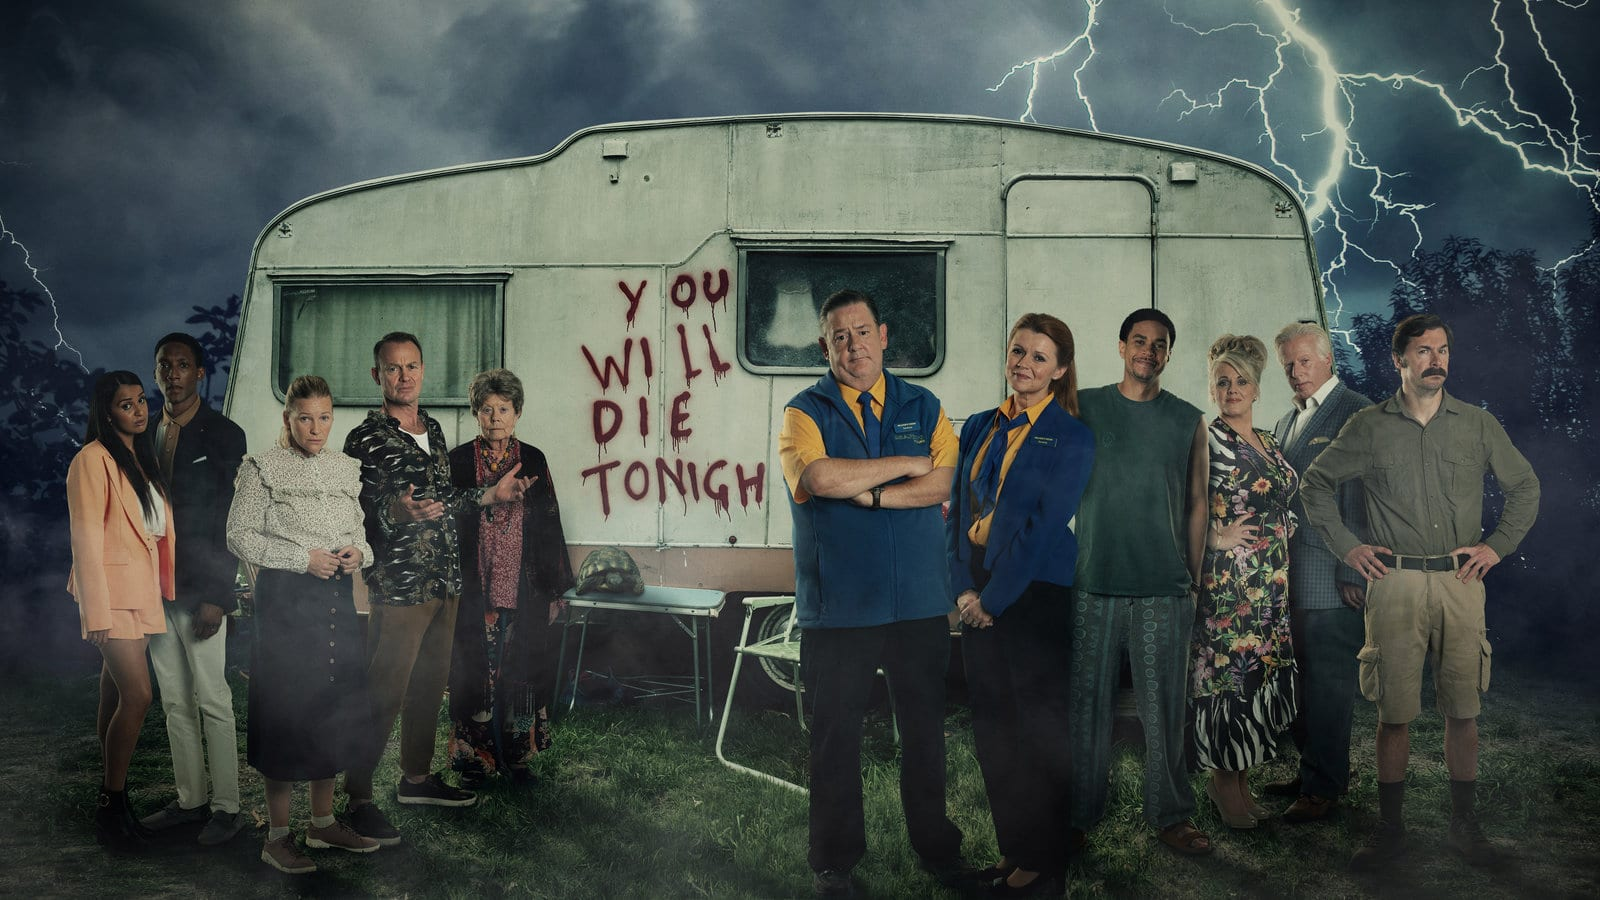 BritBox July Premieres: What's New on BritBox in July 2021? 5